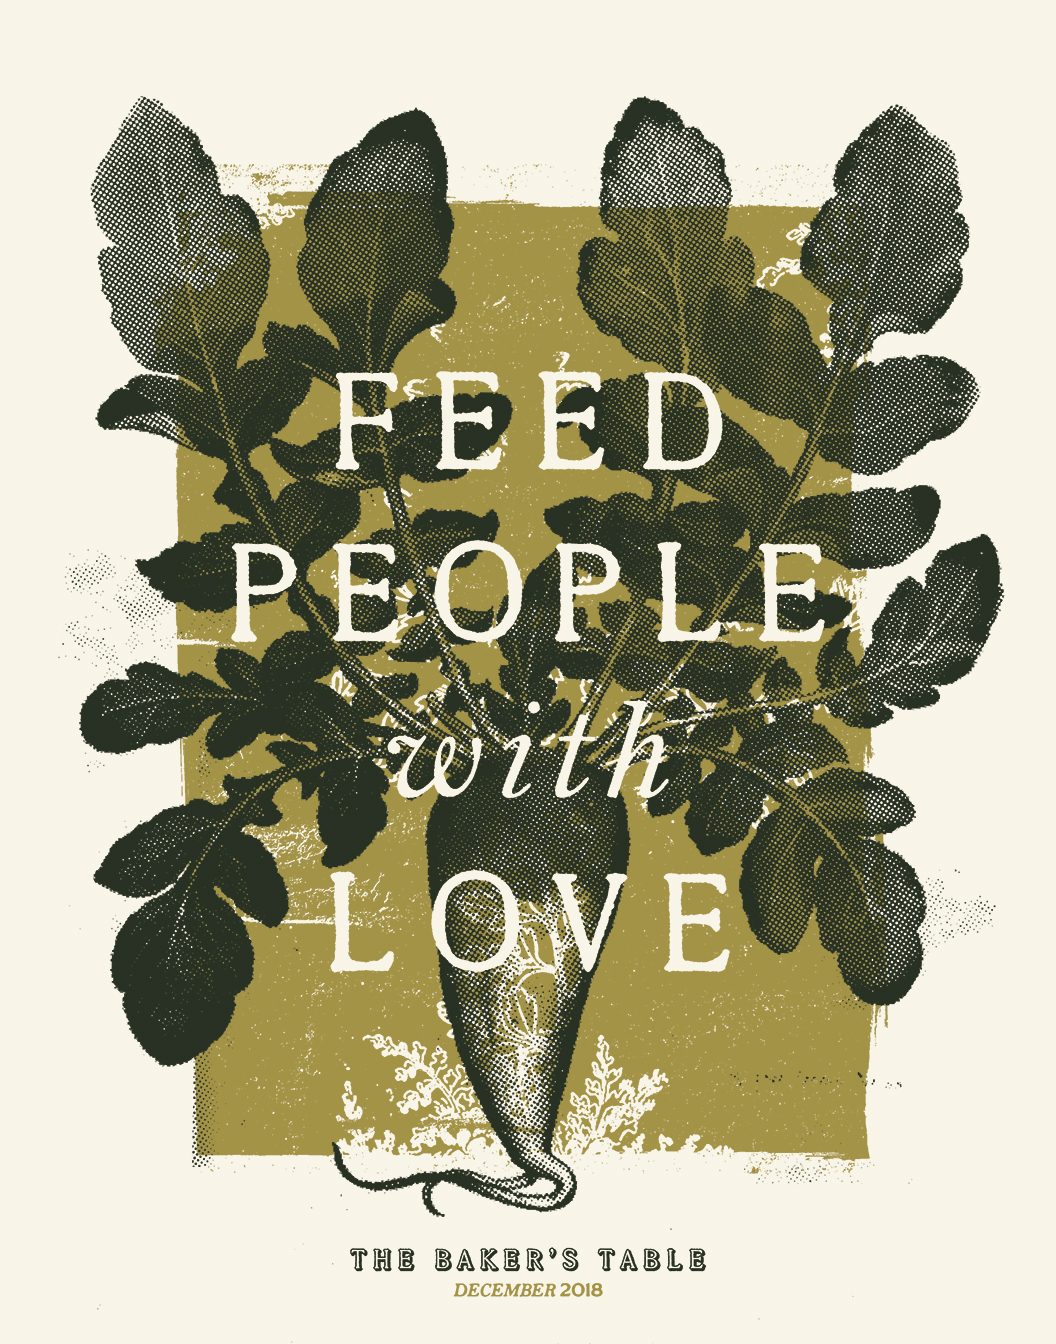 The Baker's Table - Feed People with Love